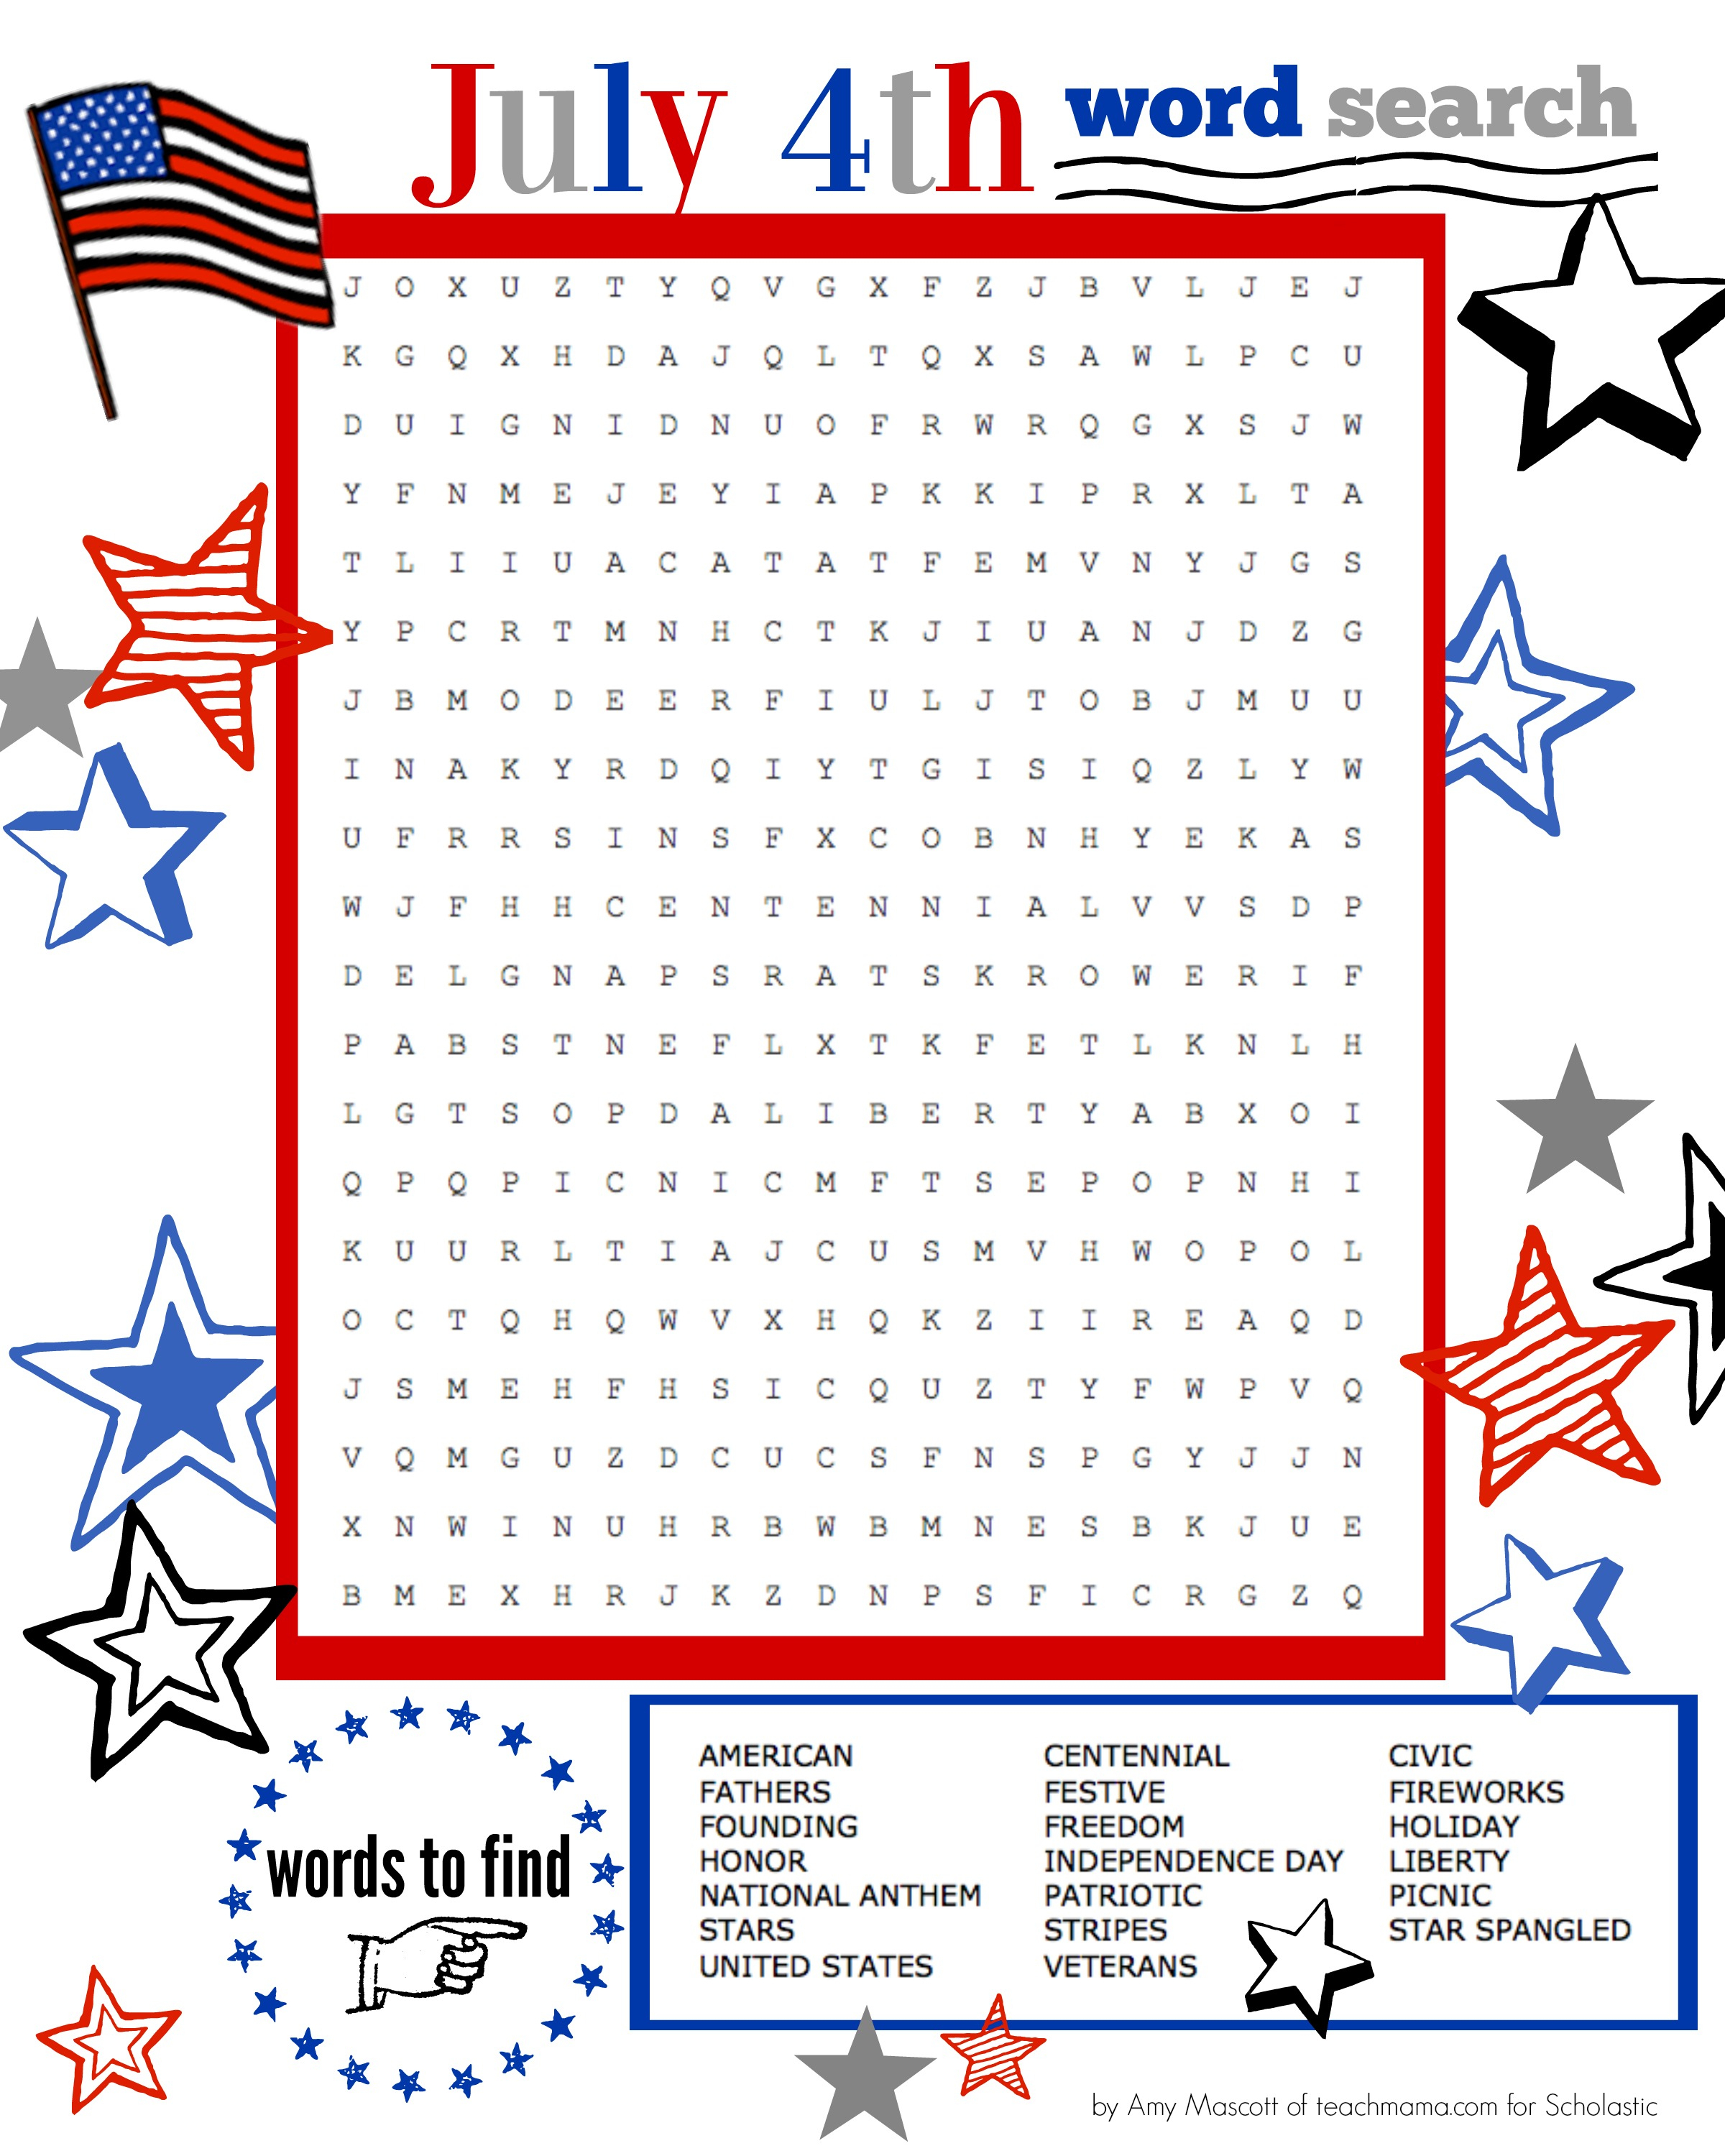 Superstar Celebration: July 4Th Word Search Printable | Scholastic - Printable 4Th Of July Crossword Puzzle